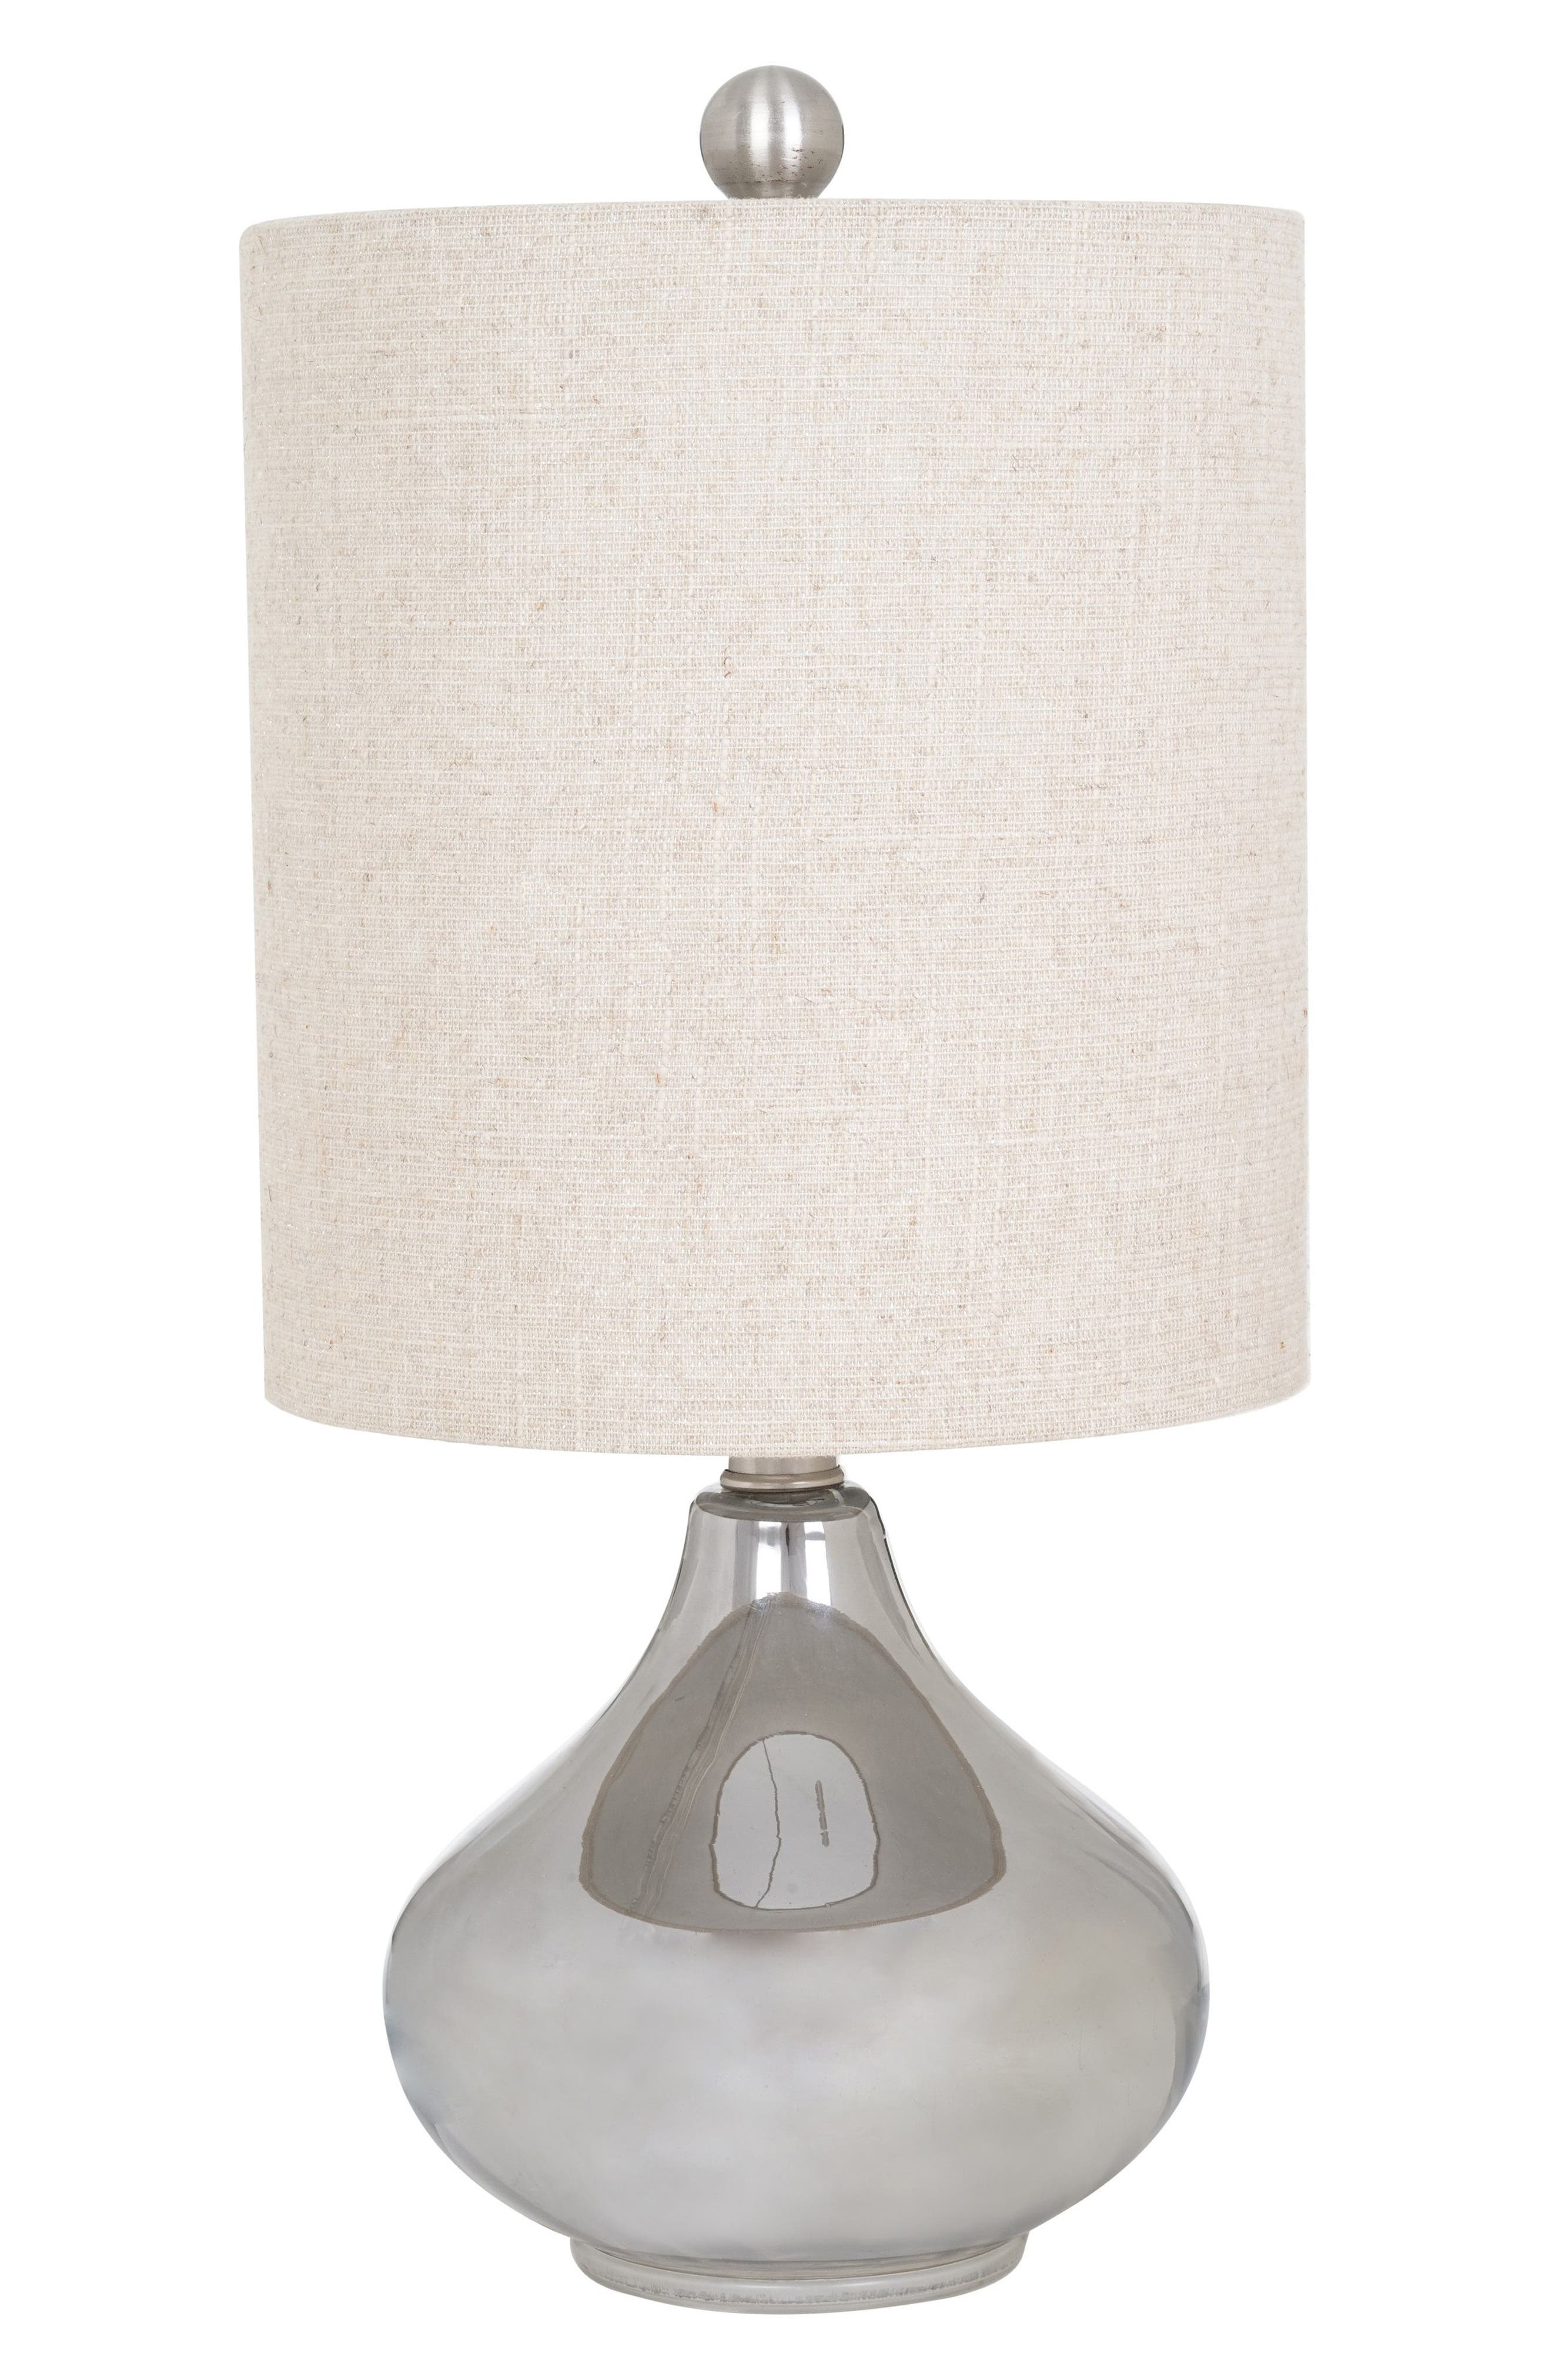 Main Image - JAlexander Lighting Chrome Table Lamp